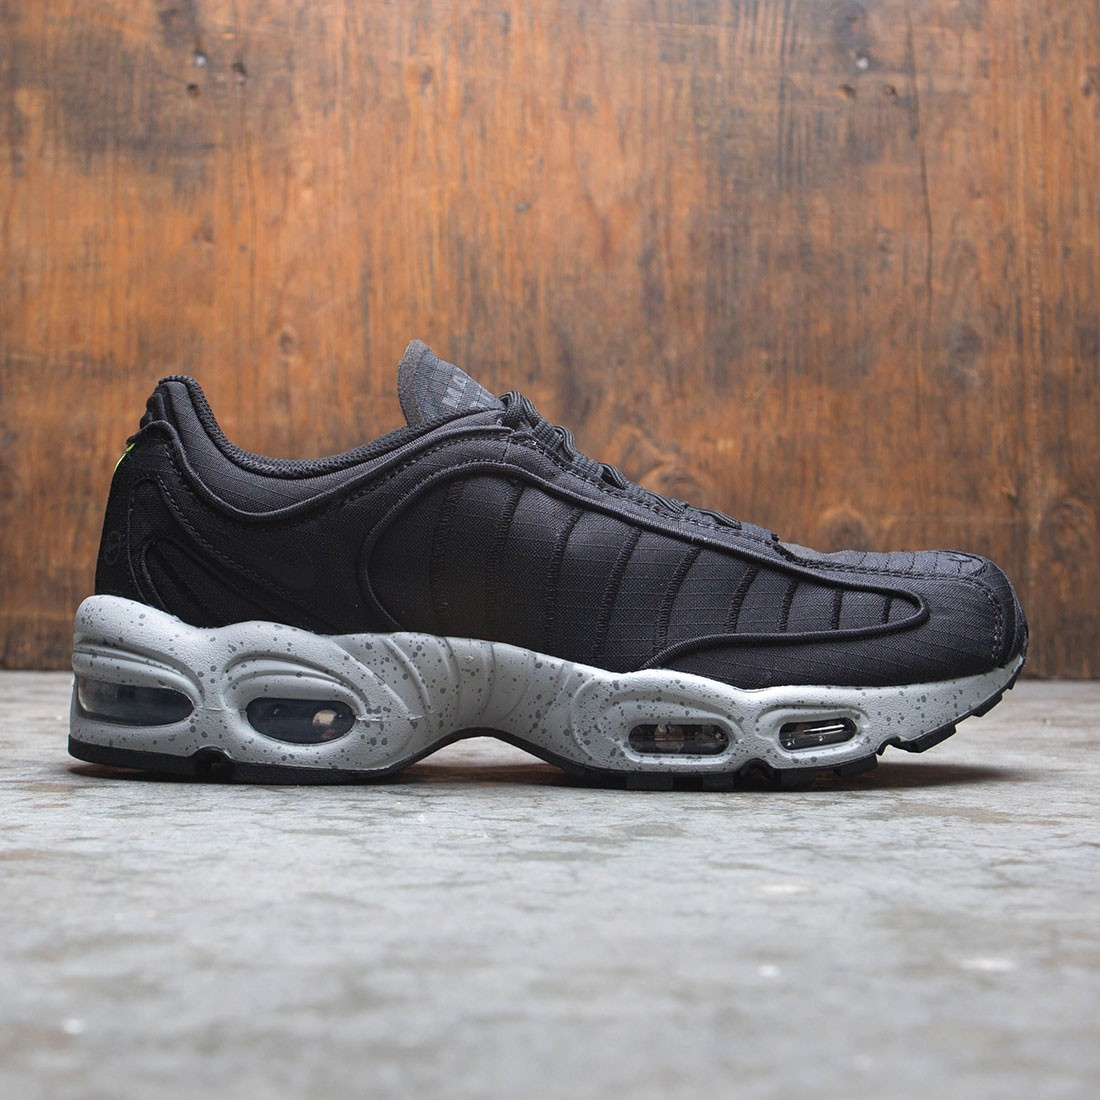 Nike Air Max Tailwind IV SP black wolf grey volt